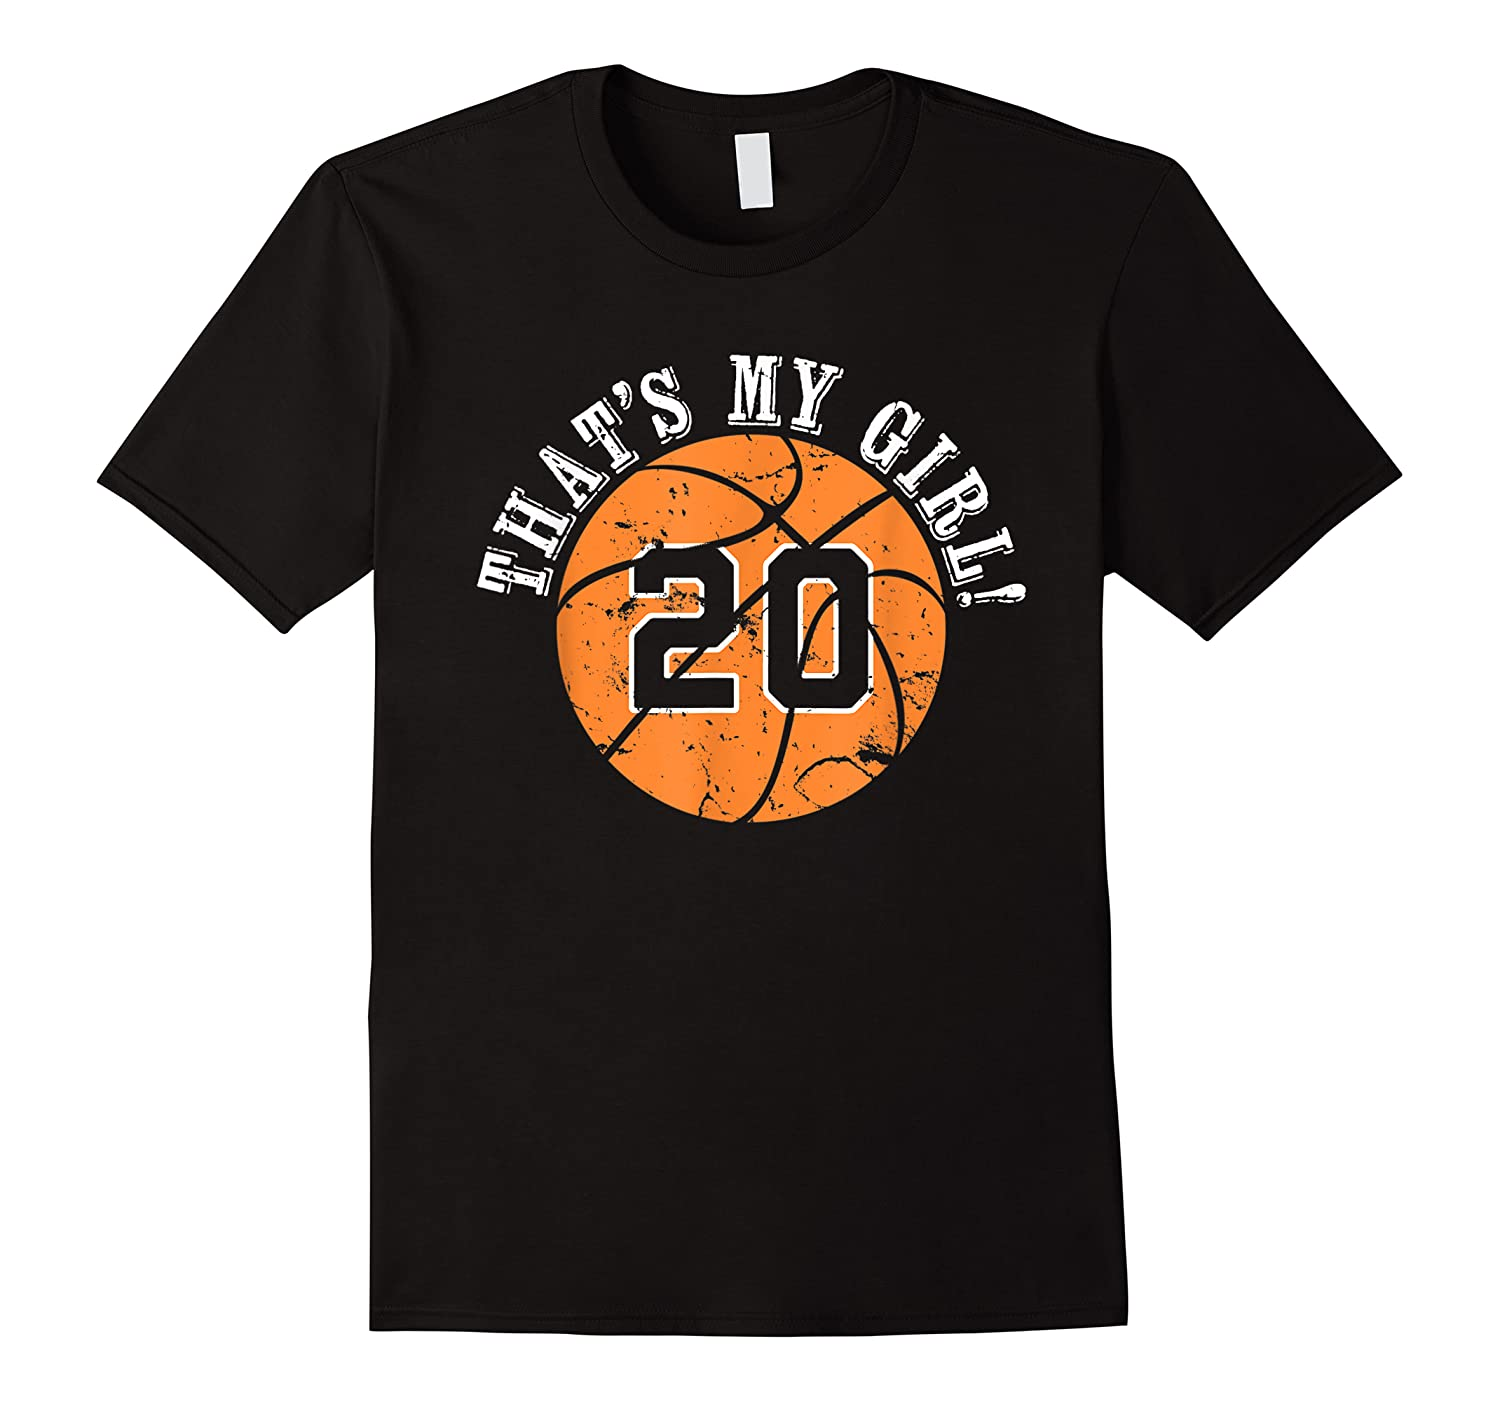 Unique That\\\'s My Girl #20 Basketball Player Mom Or Dad Gifts T-shirt